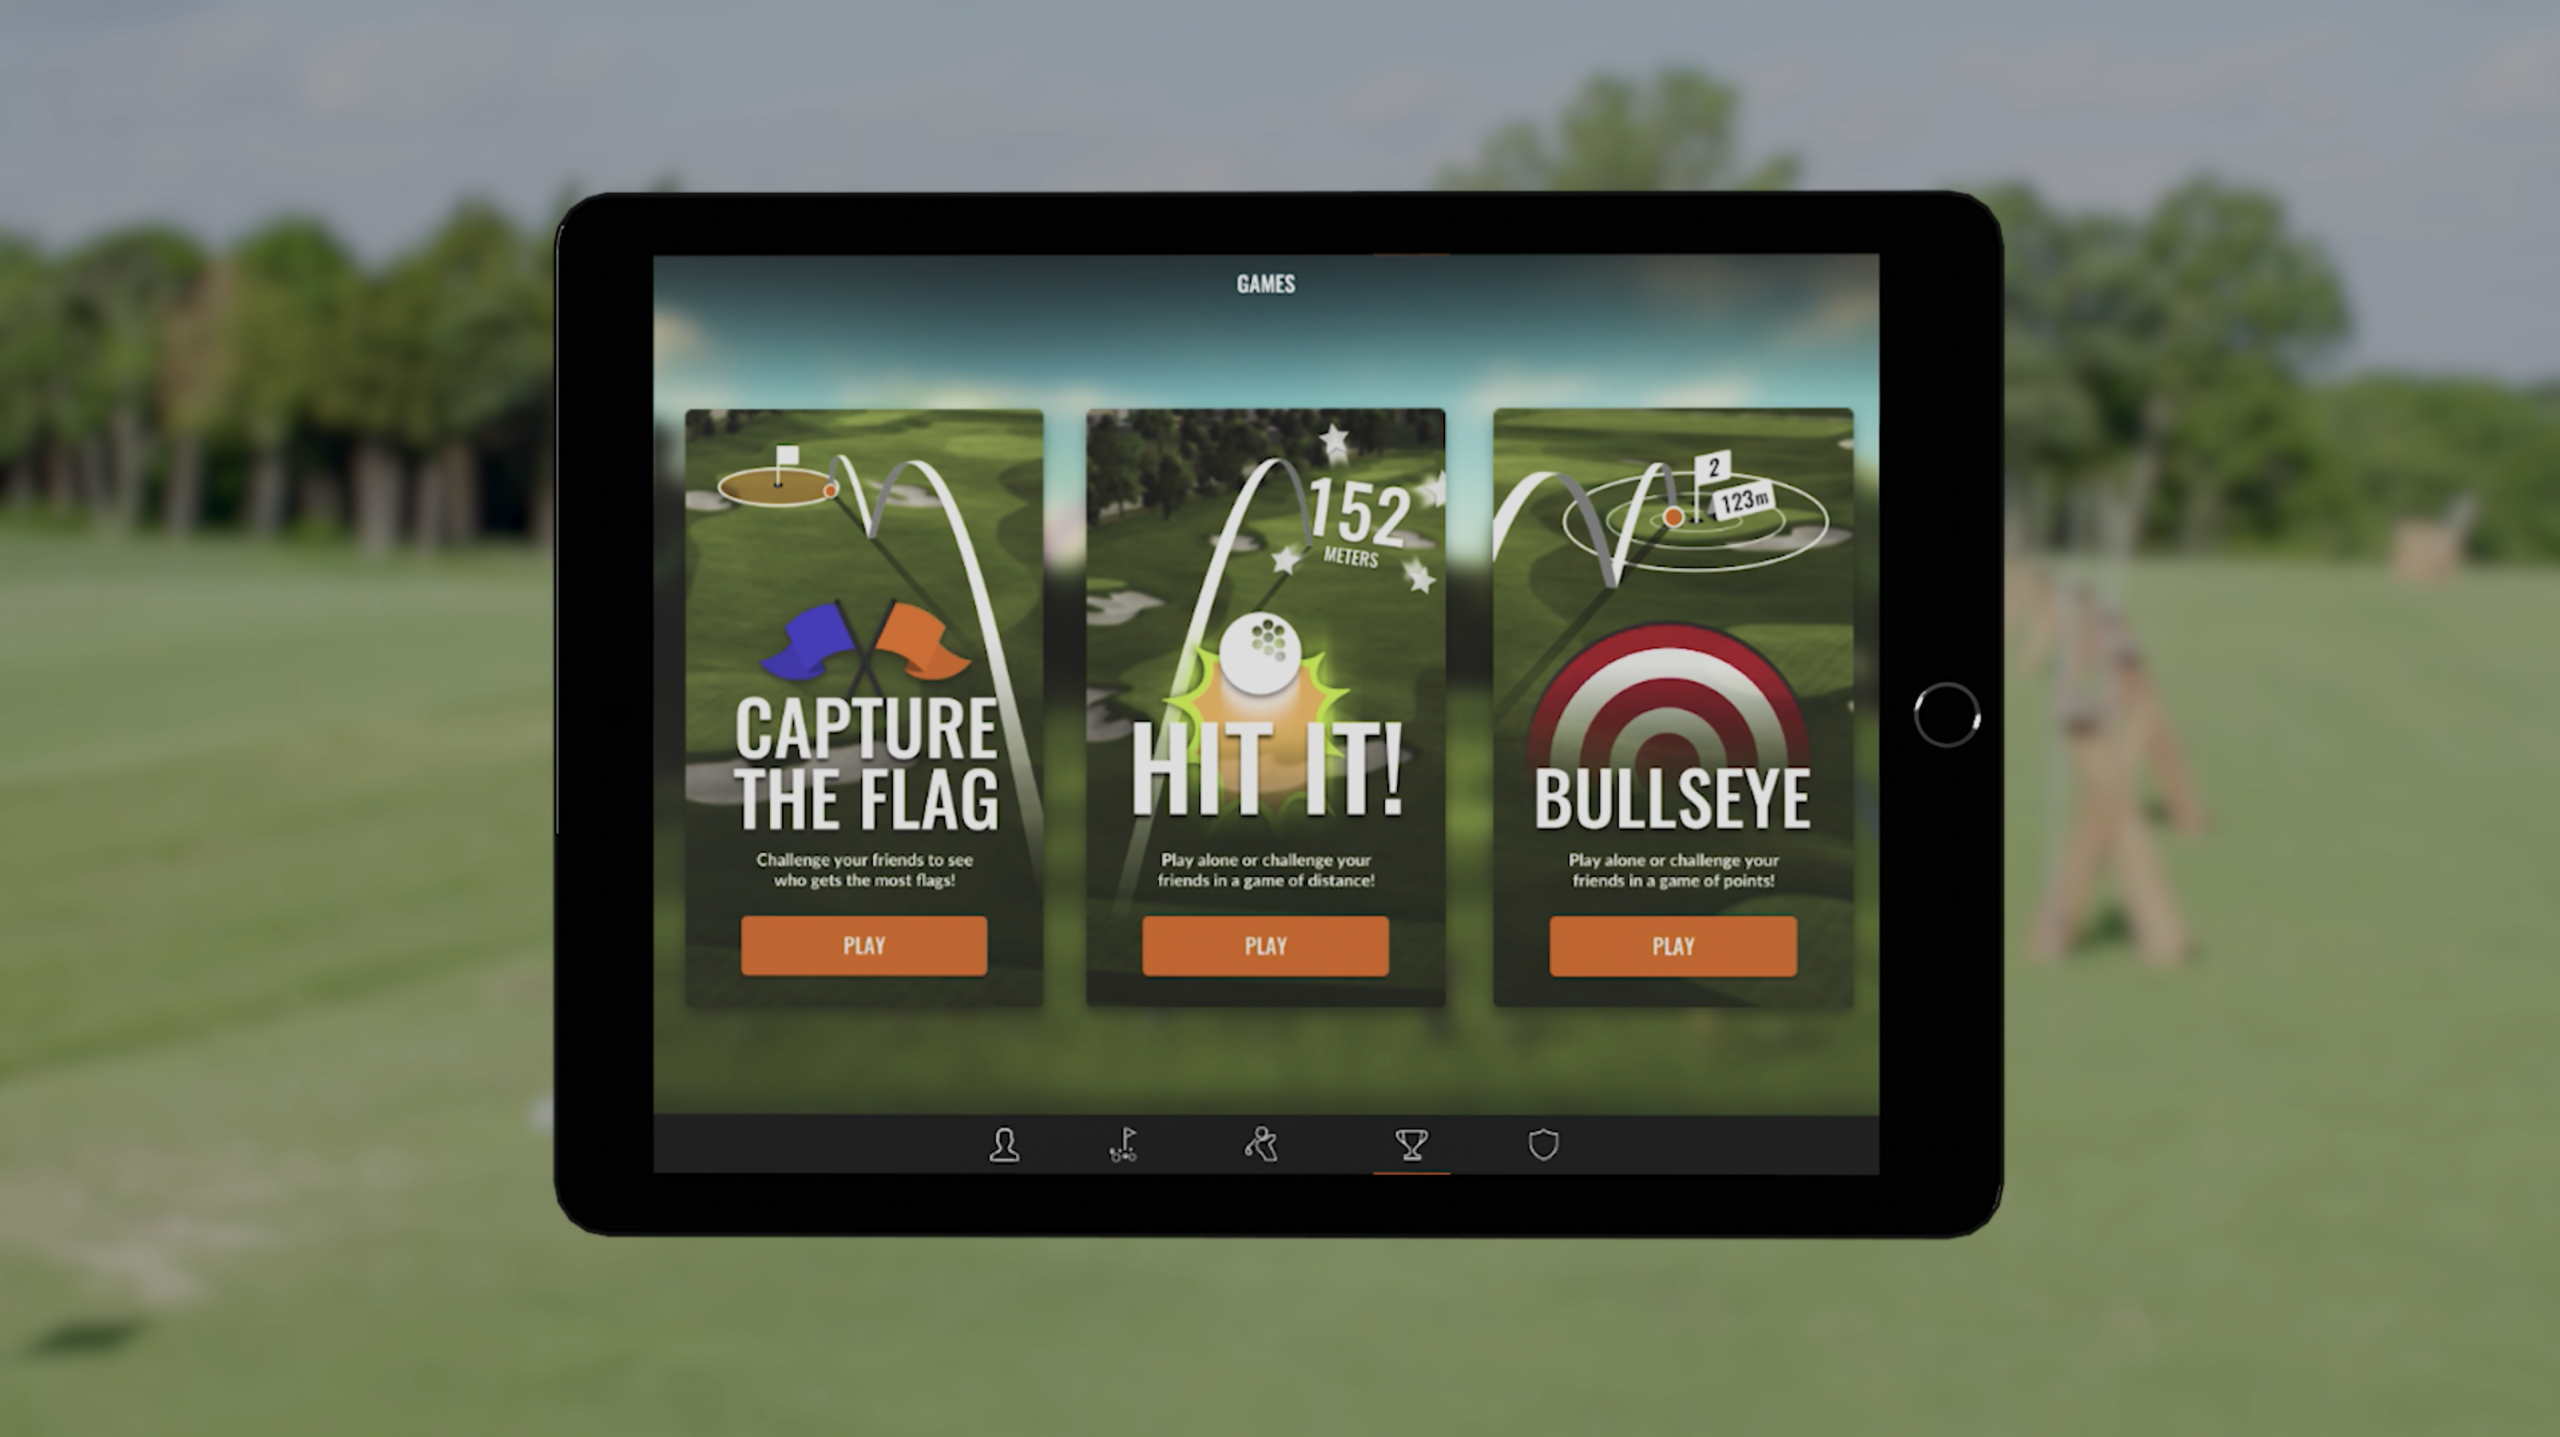 iPad screen with images of 3 games you can play with Trackman Range Games